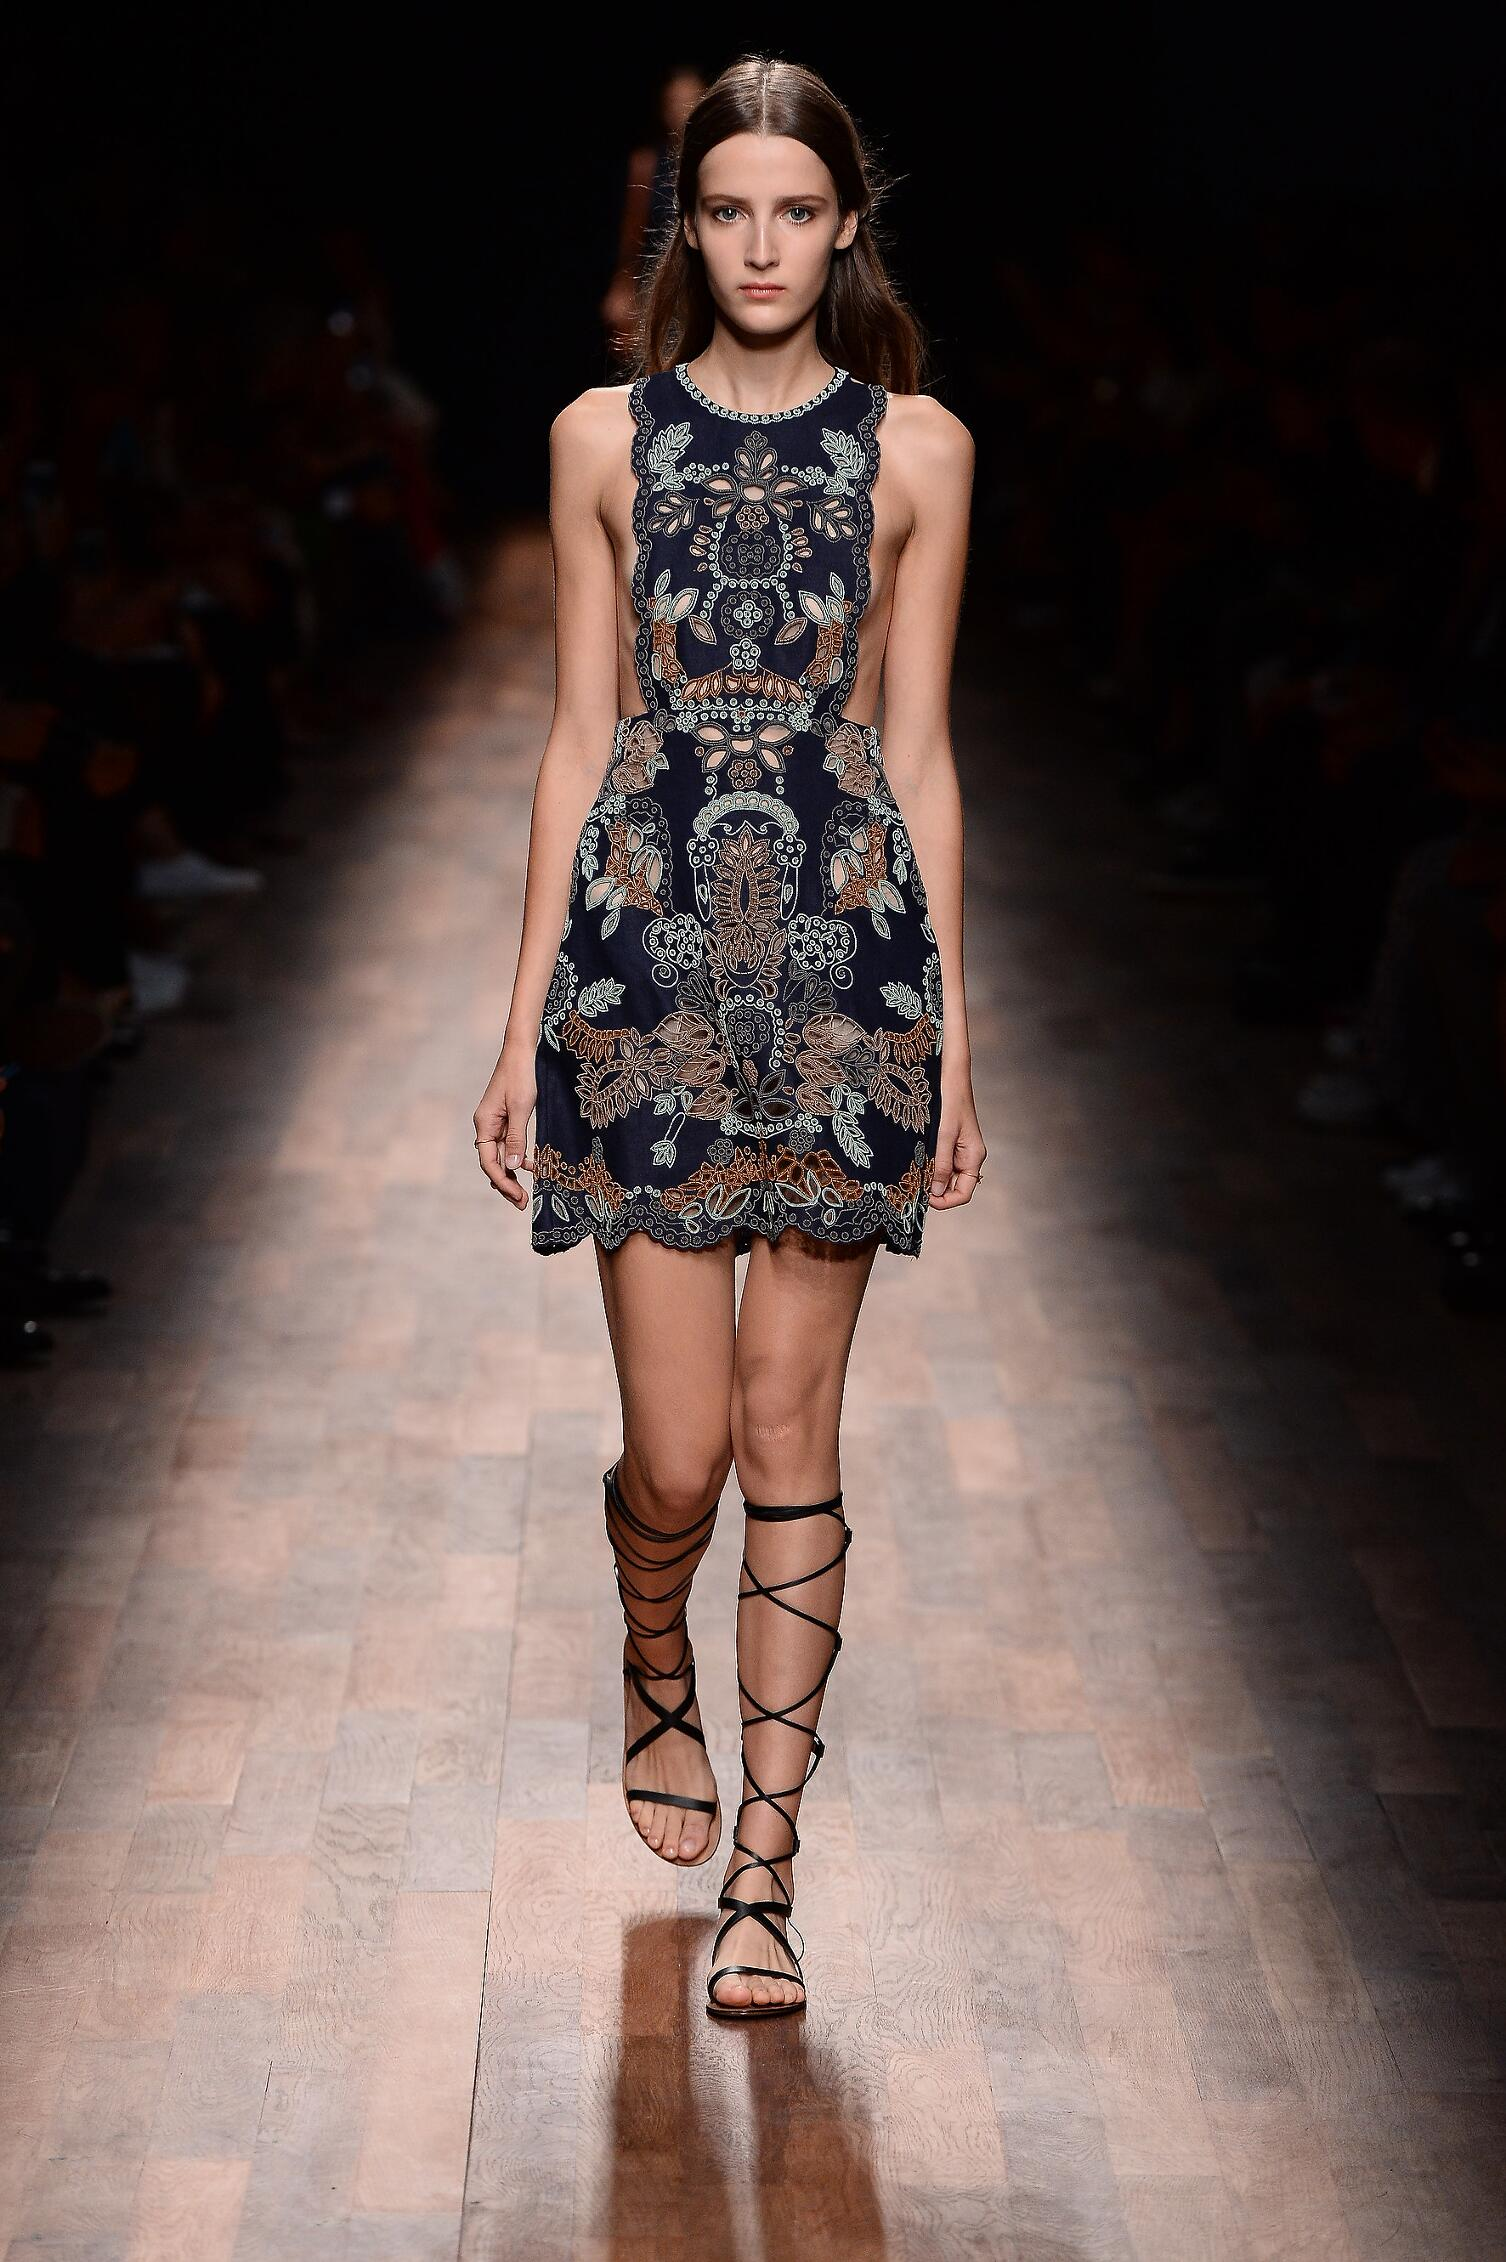 Summer Fashion Show In Year 2015 For Valentino s Spring Summer